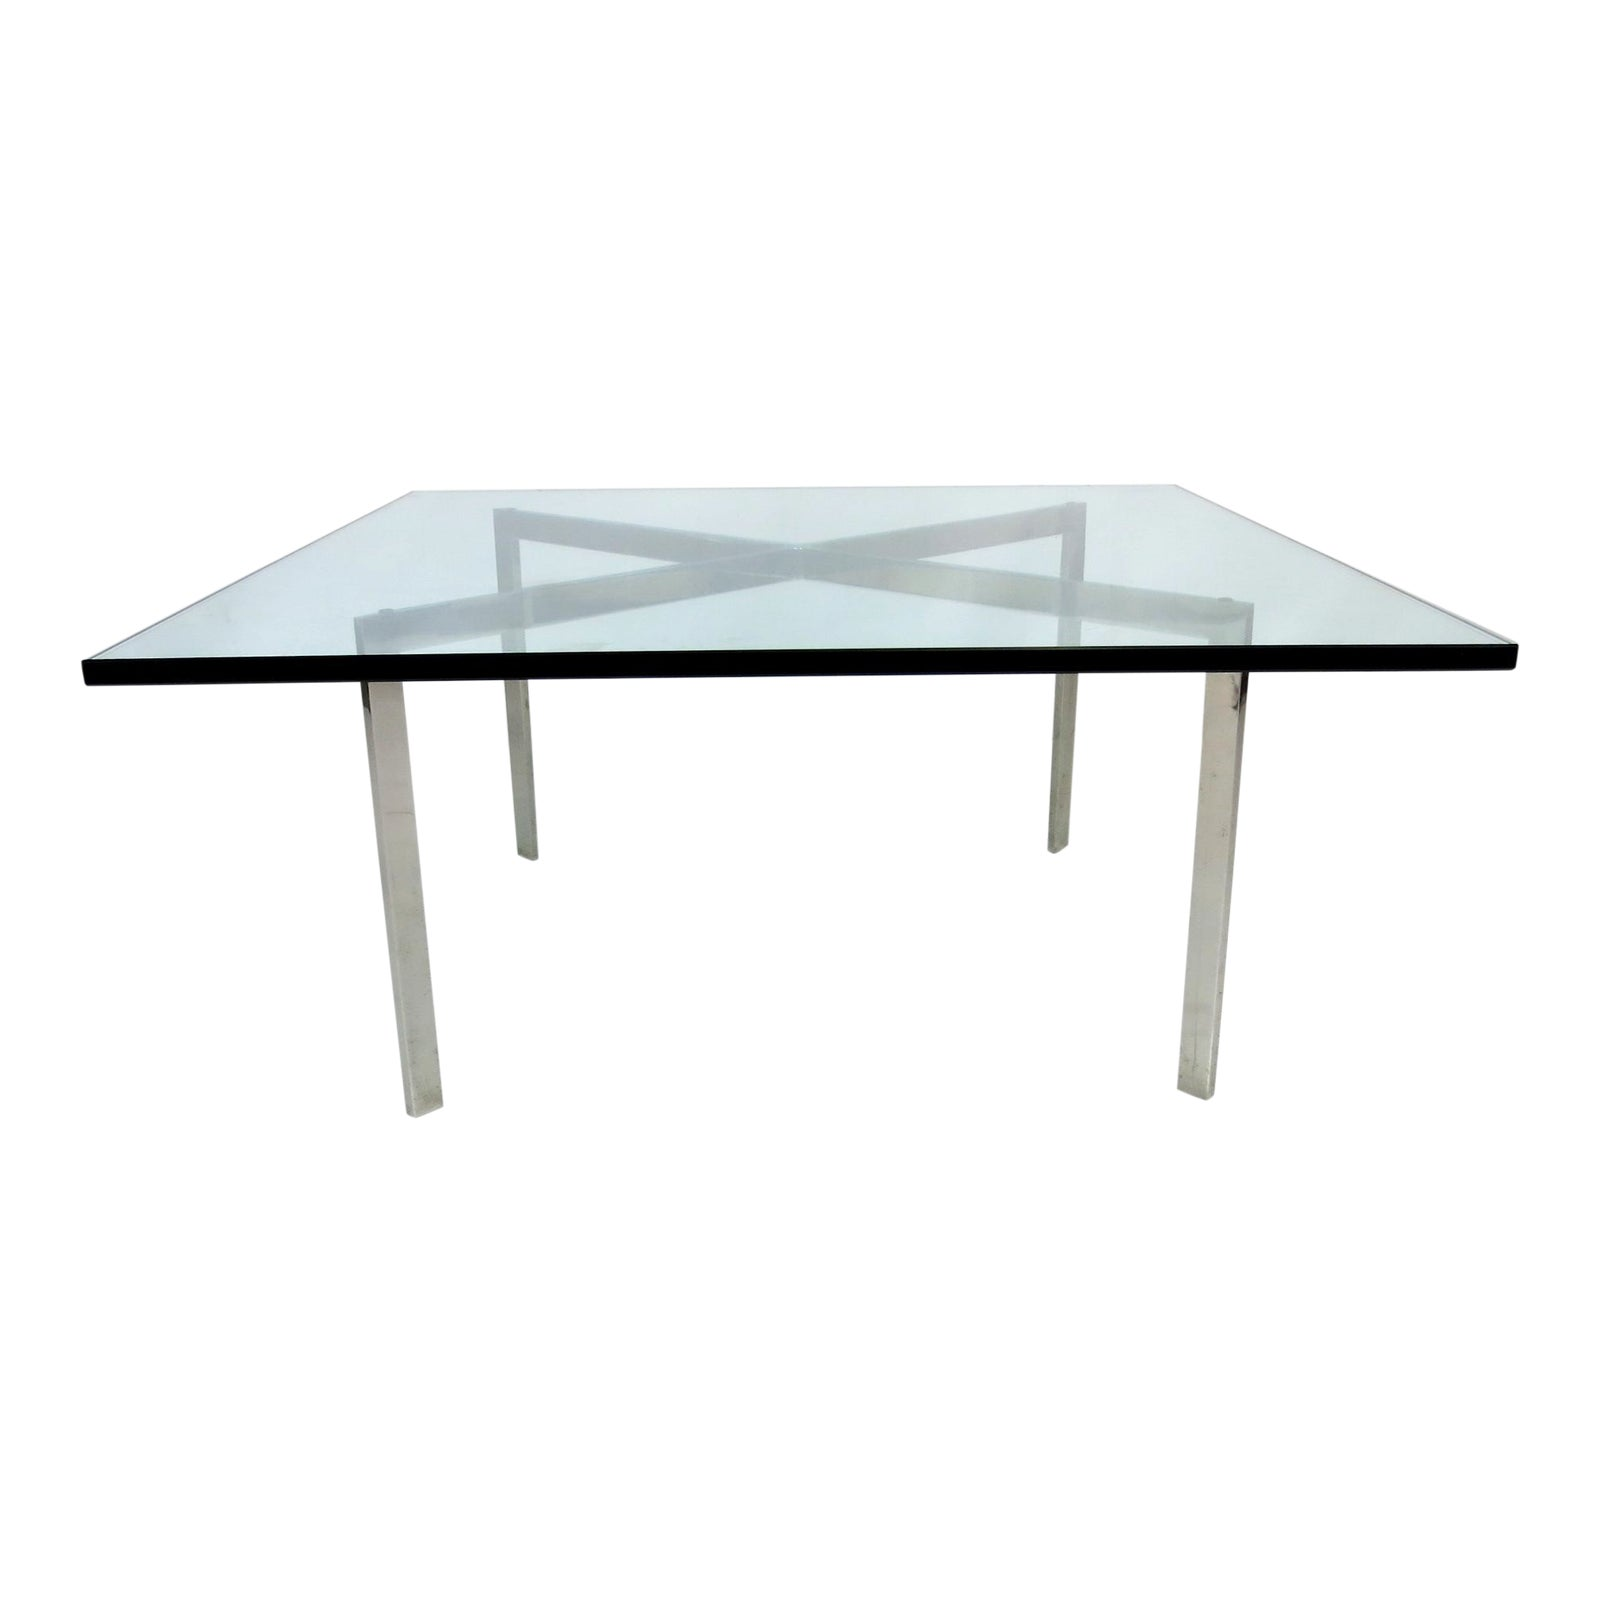 World Class Early Barcelona Coffee Table By Mies Van Der